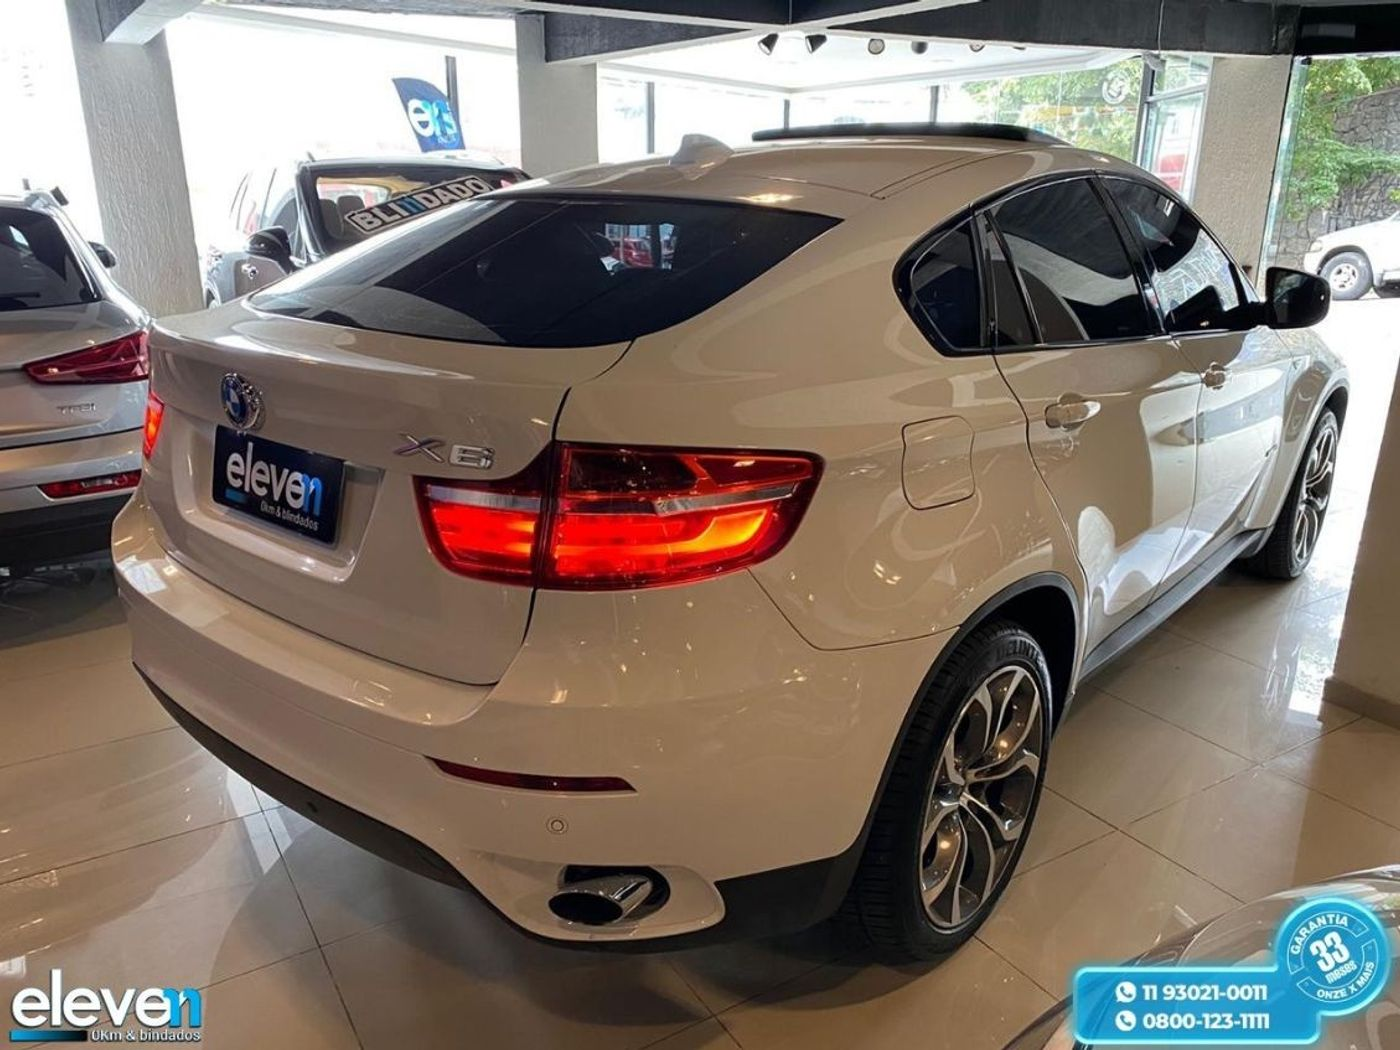 BMW X6 XDRIVE 35i 3.0 306cv Bi-Turbo